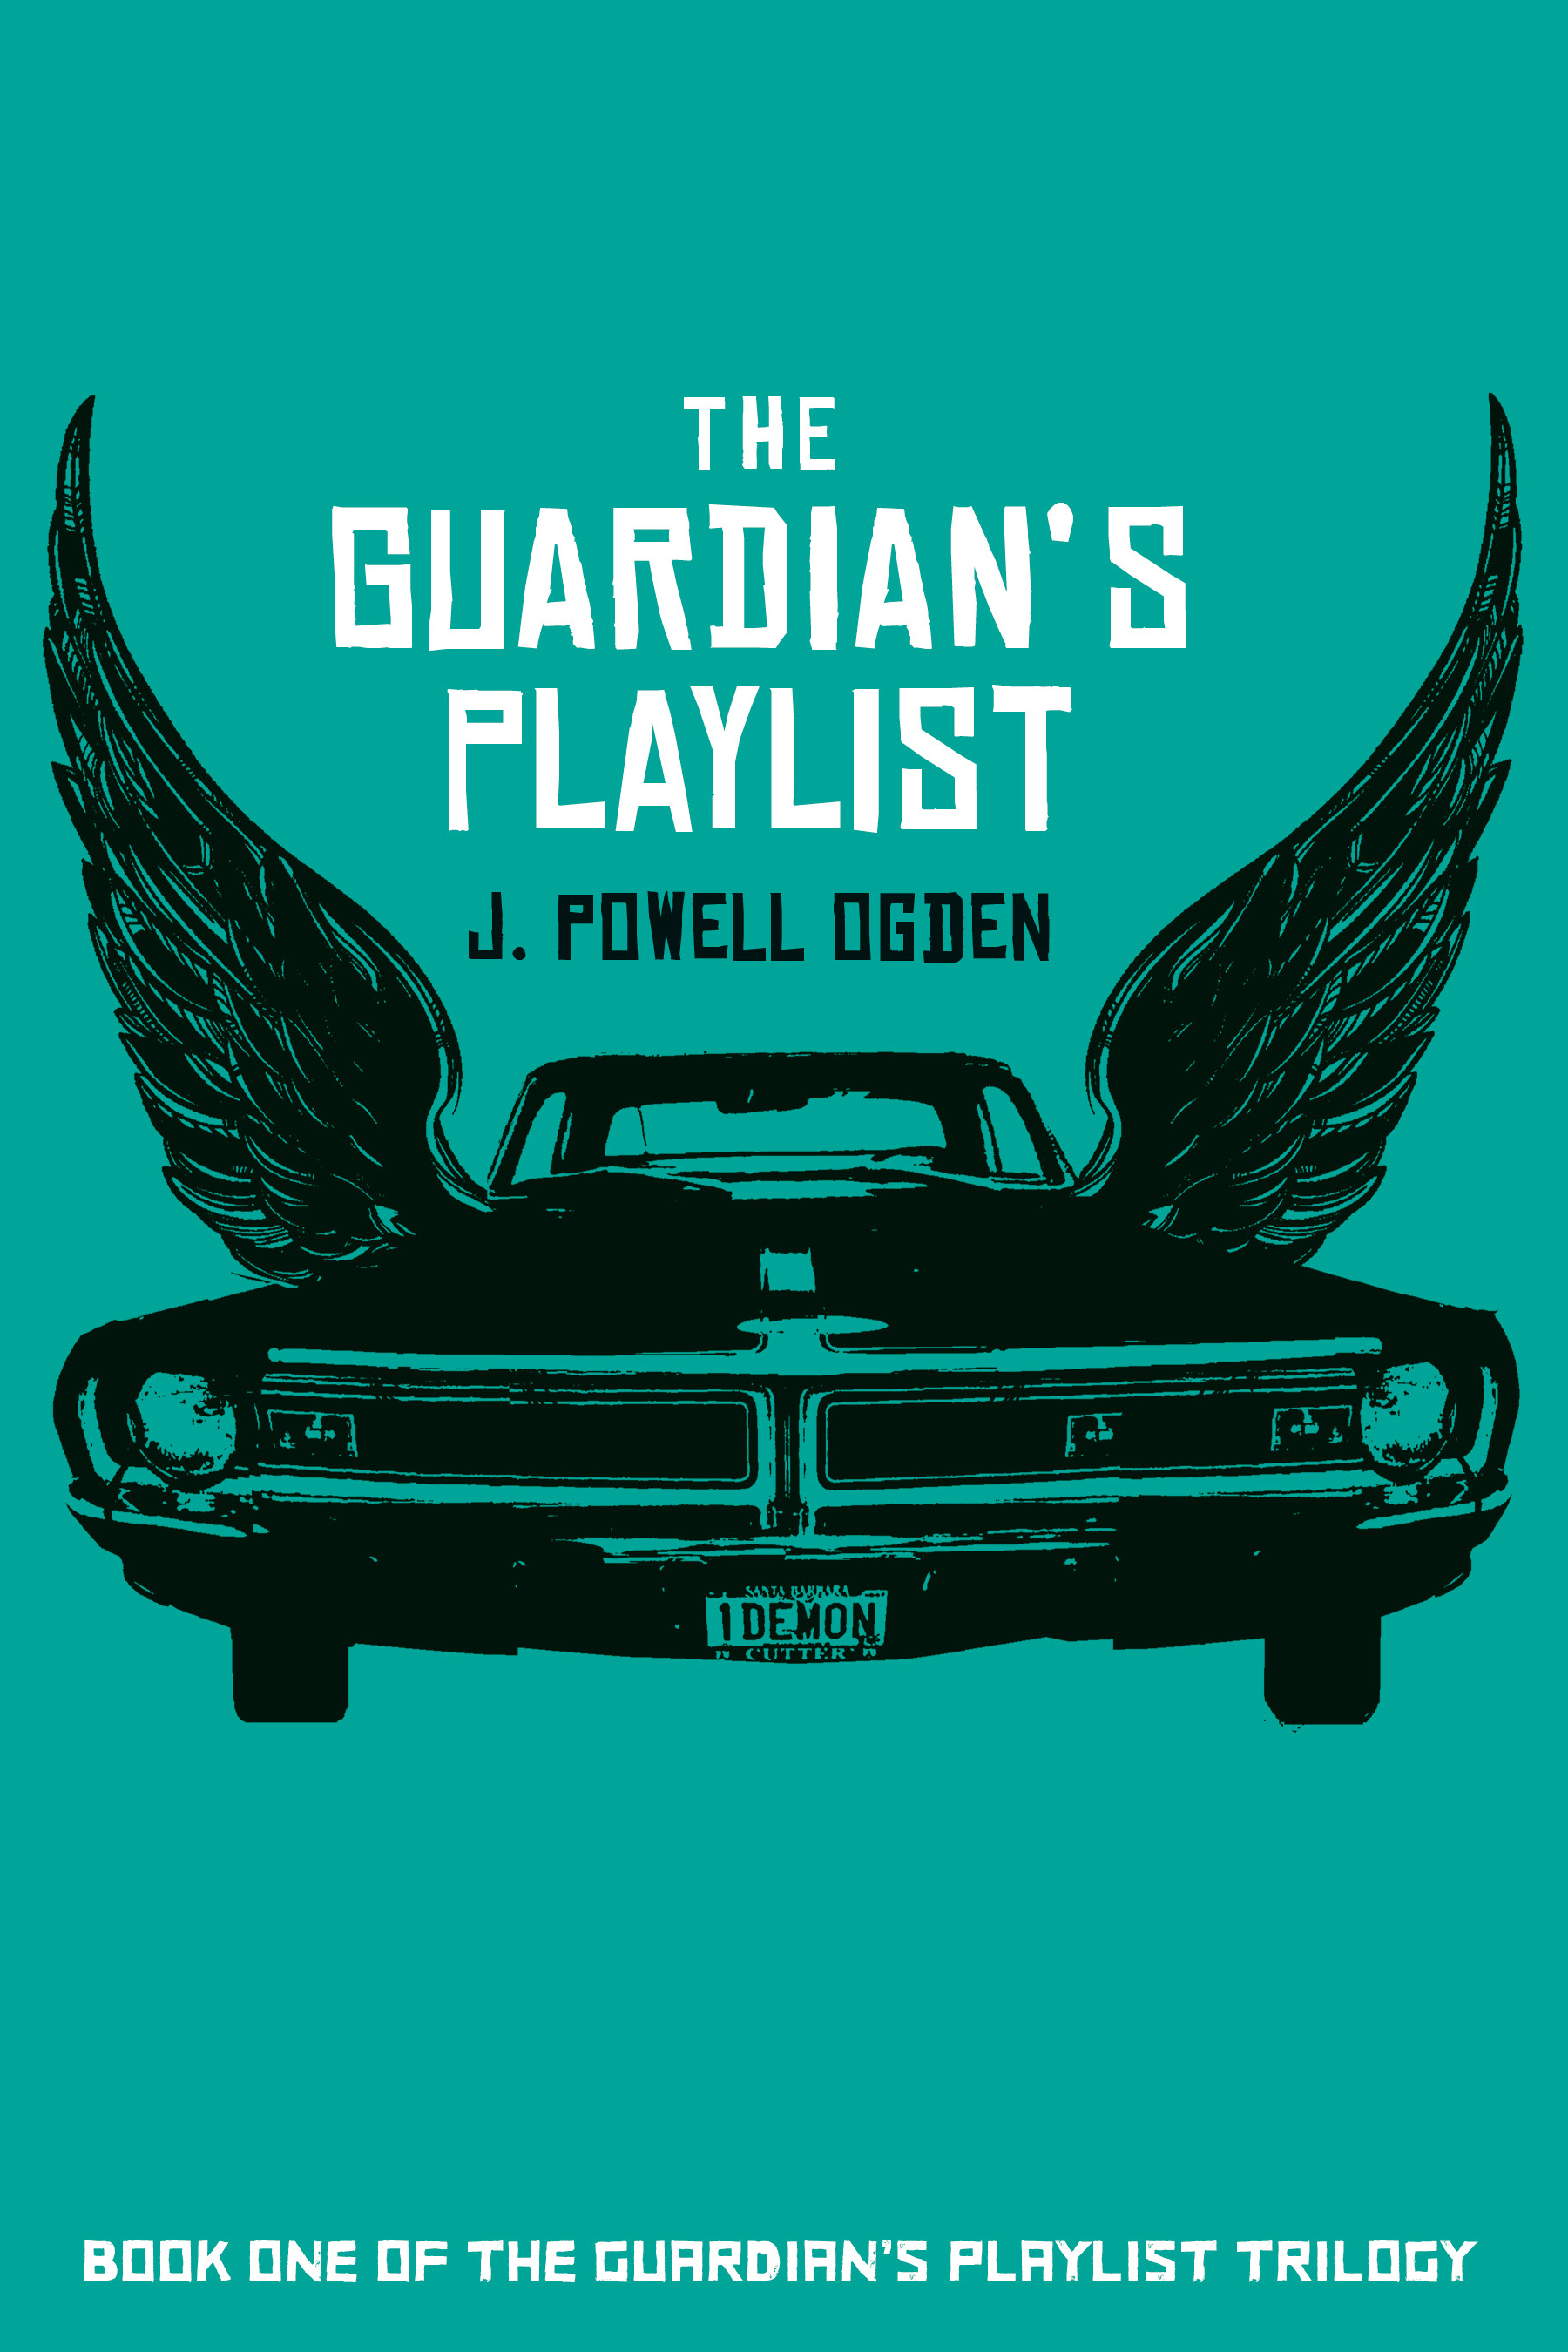 BOOK ONE of The Guardian's Playlist Trilogy